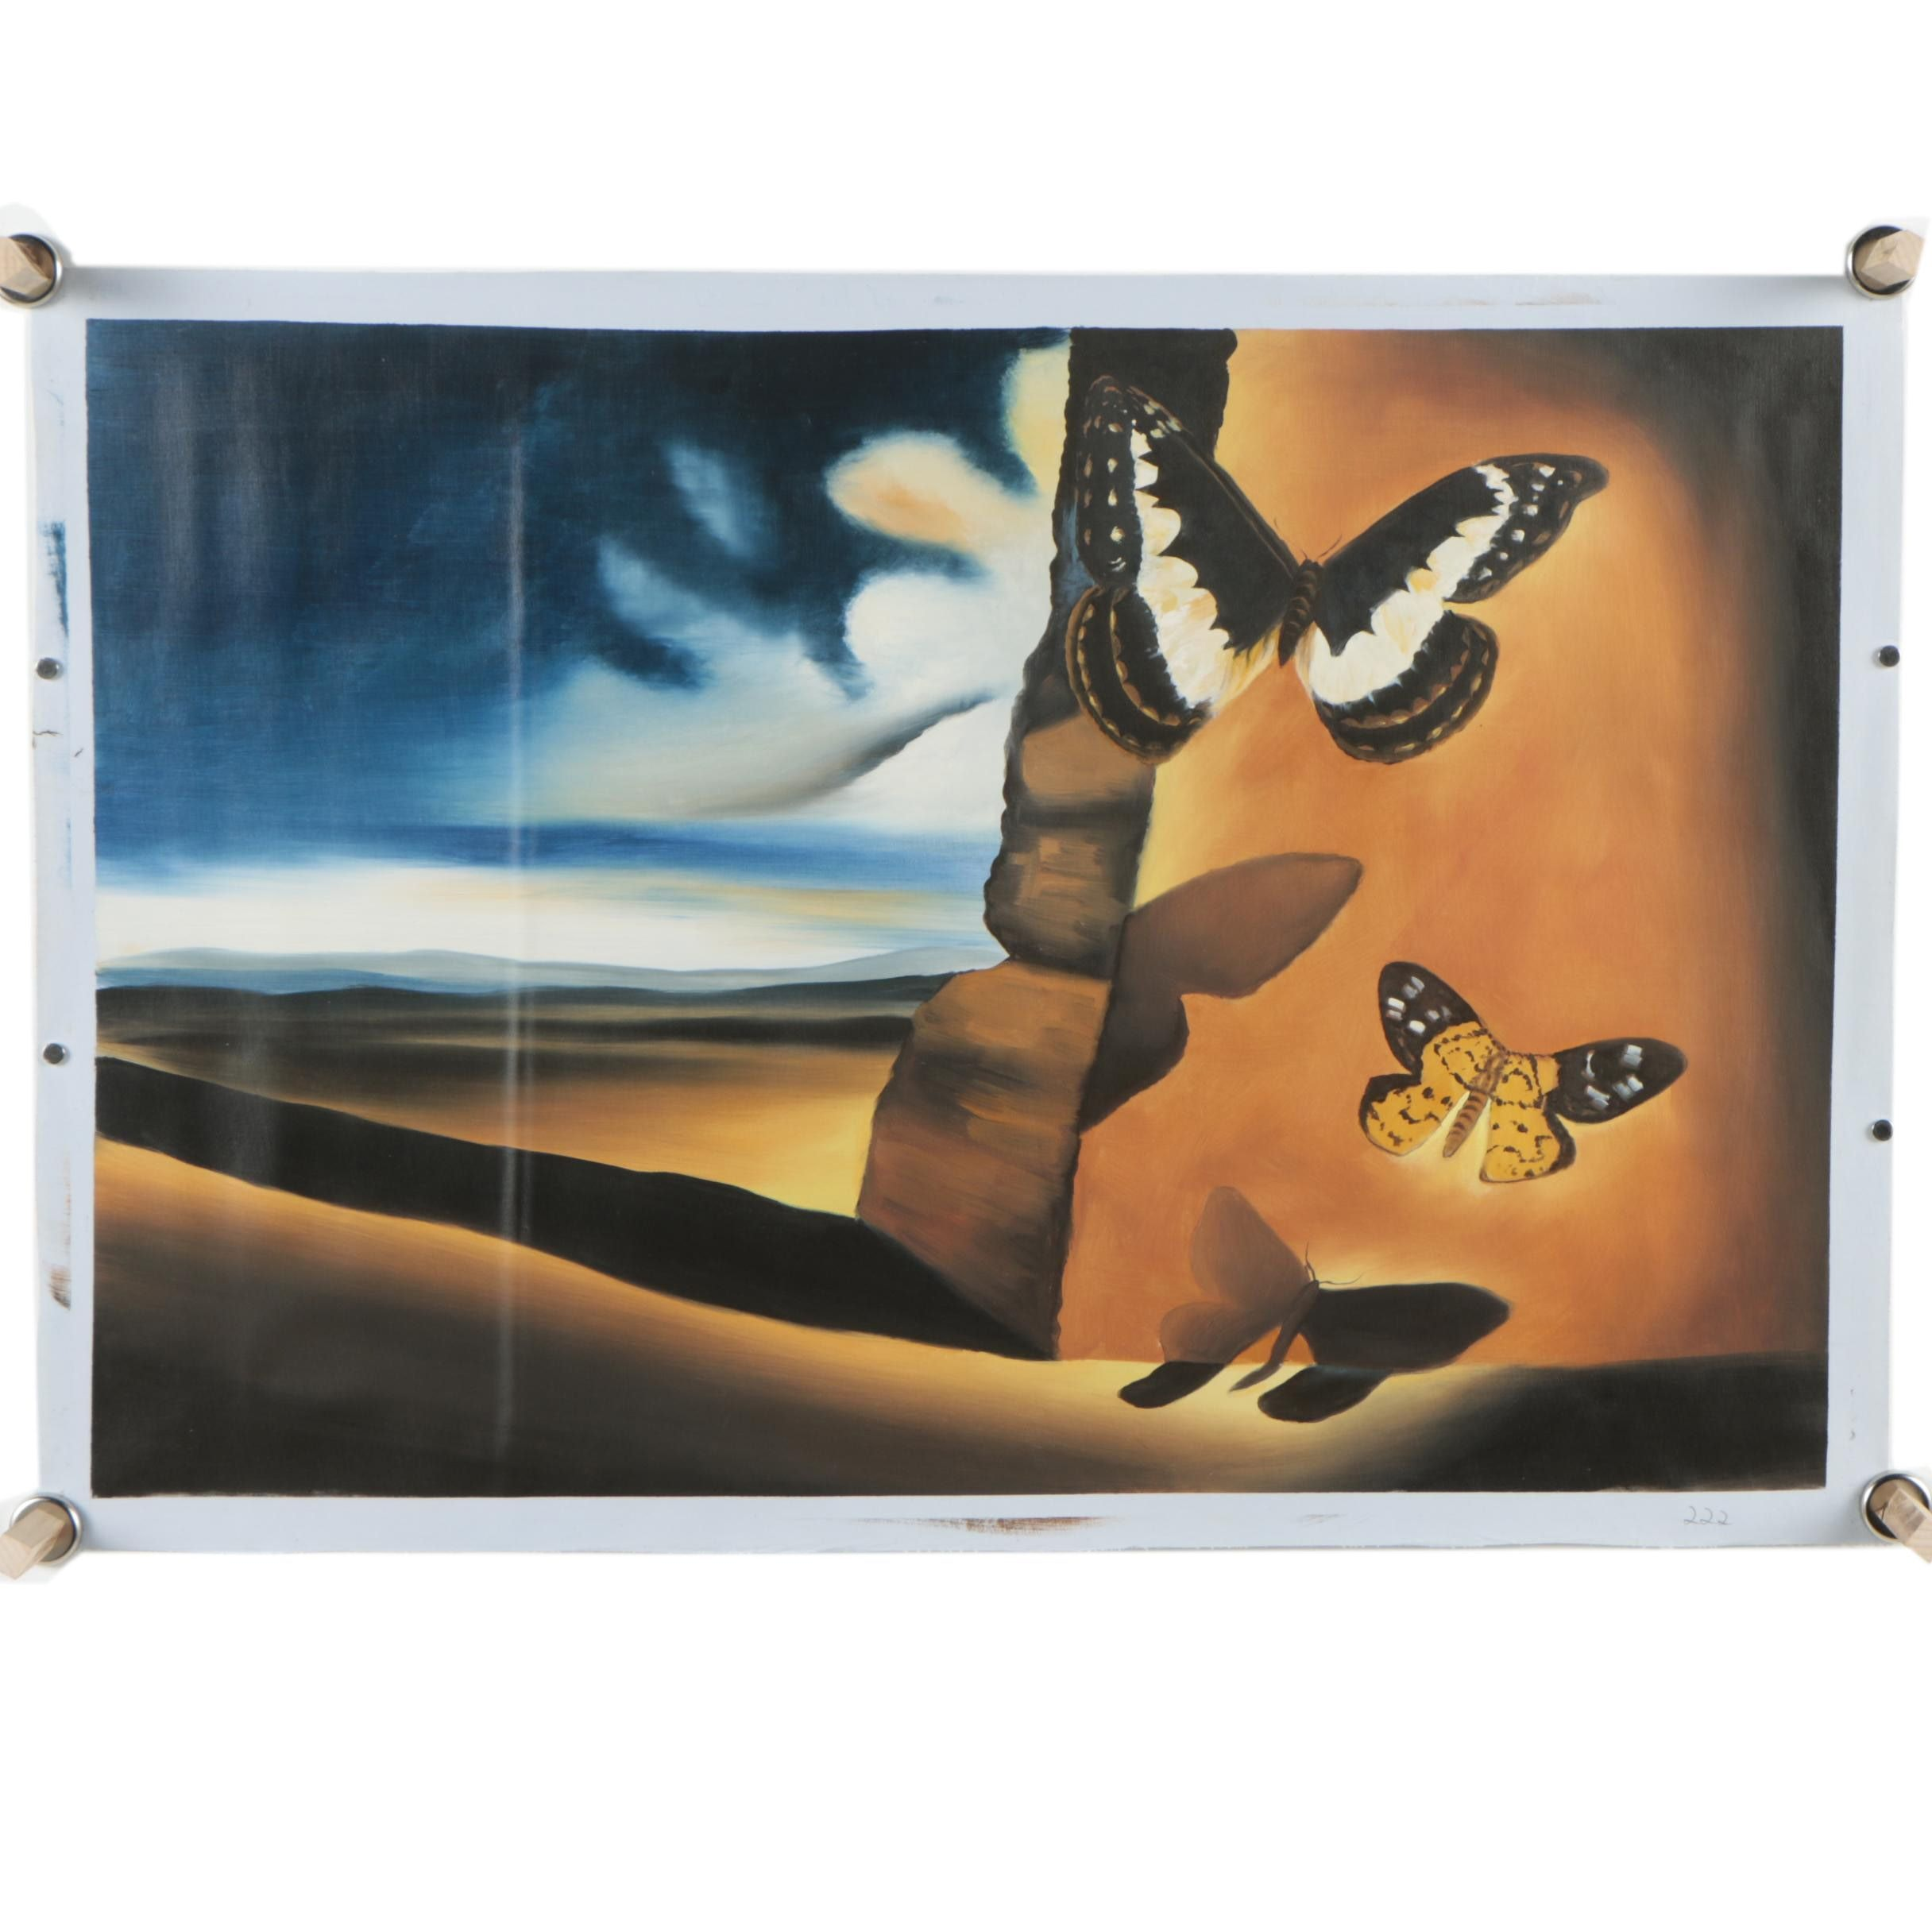 "Copy Oil Painting After Salvador Dali ""Landscape with Butterflies"""